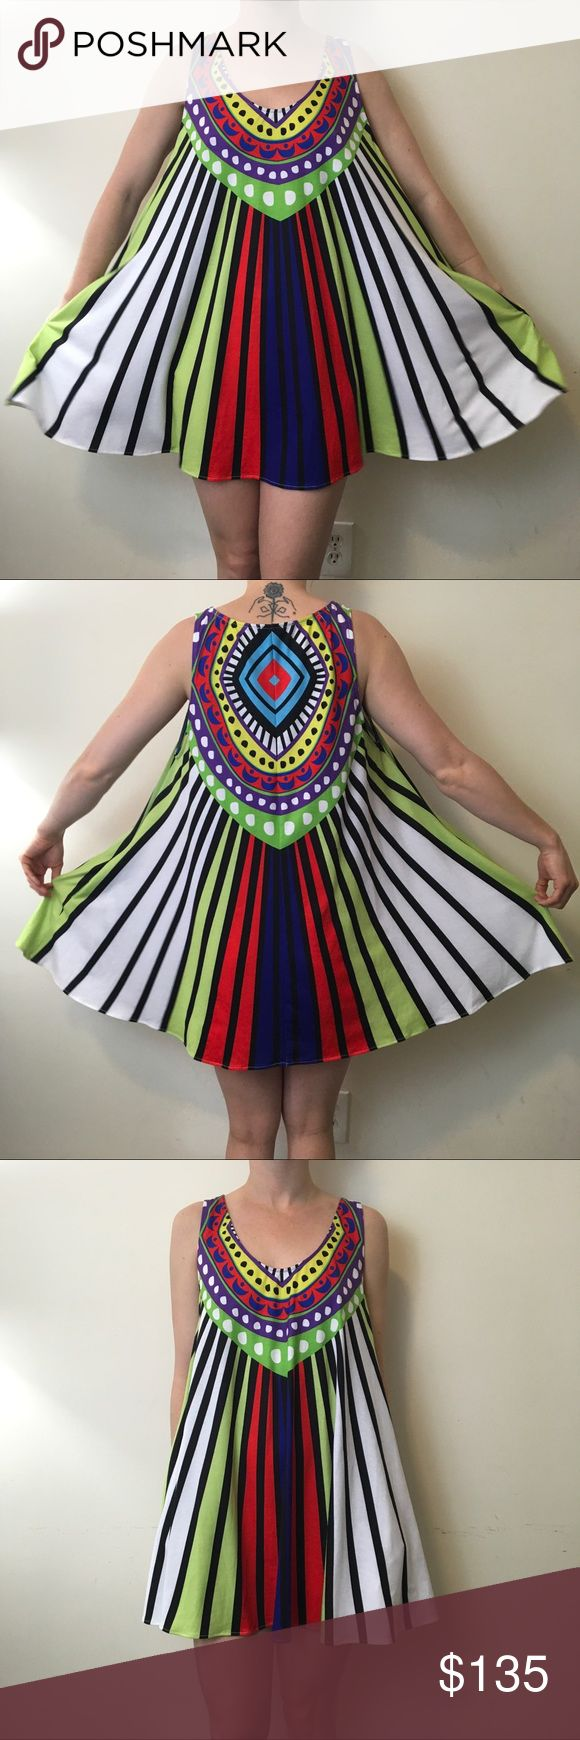 Mara Hoffman Swim Watermelon Striped Circle Dress Mara Hoffman Swim dress with a bold watermelon like print atop in the form of stripes and is not lined. Circle style and was worn lightly on,y a few times! Don't miss this beauty. Pair it with some wooden wedges and a cute bikini and you're all set! Mara Hoffman Dresses Mini